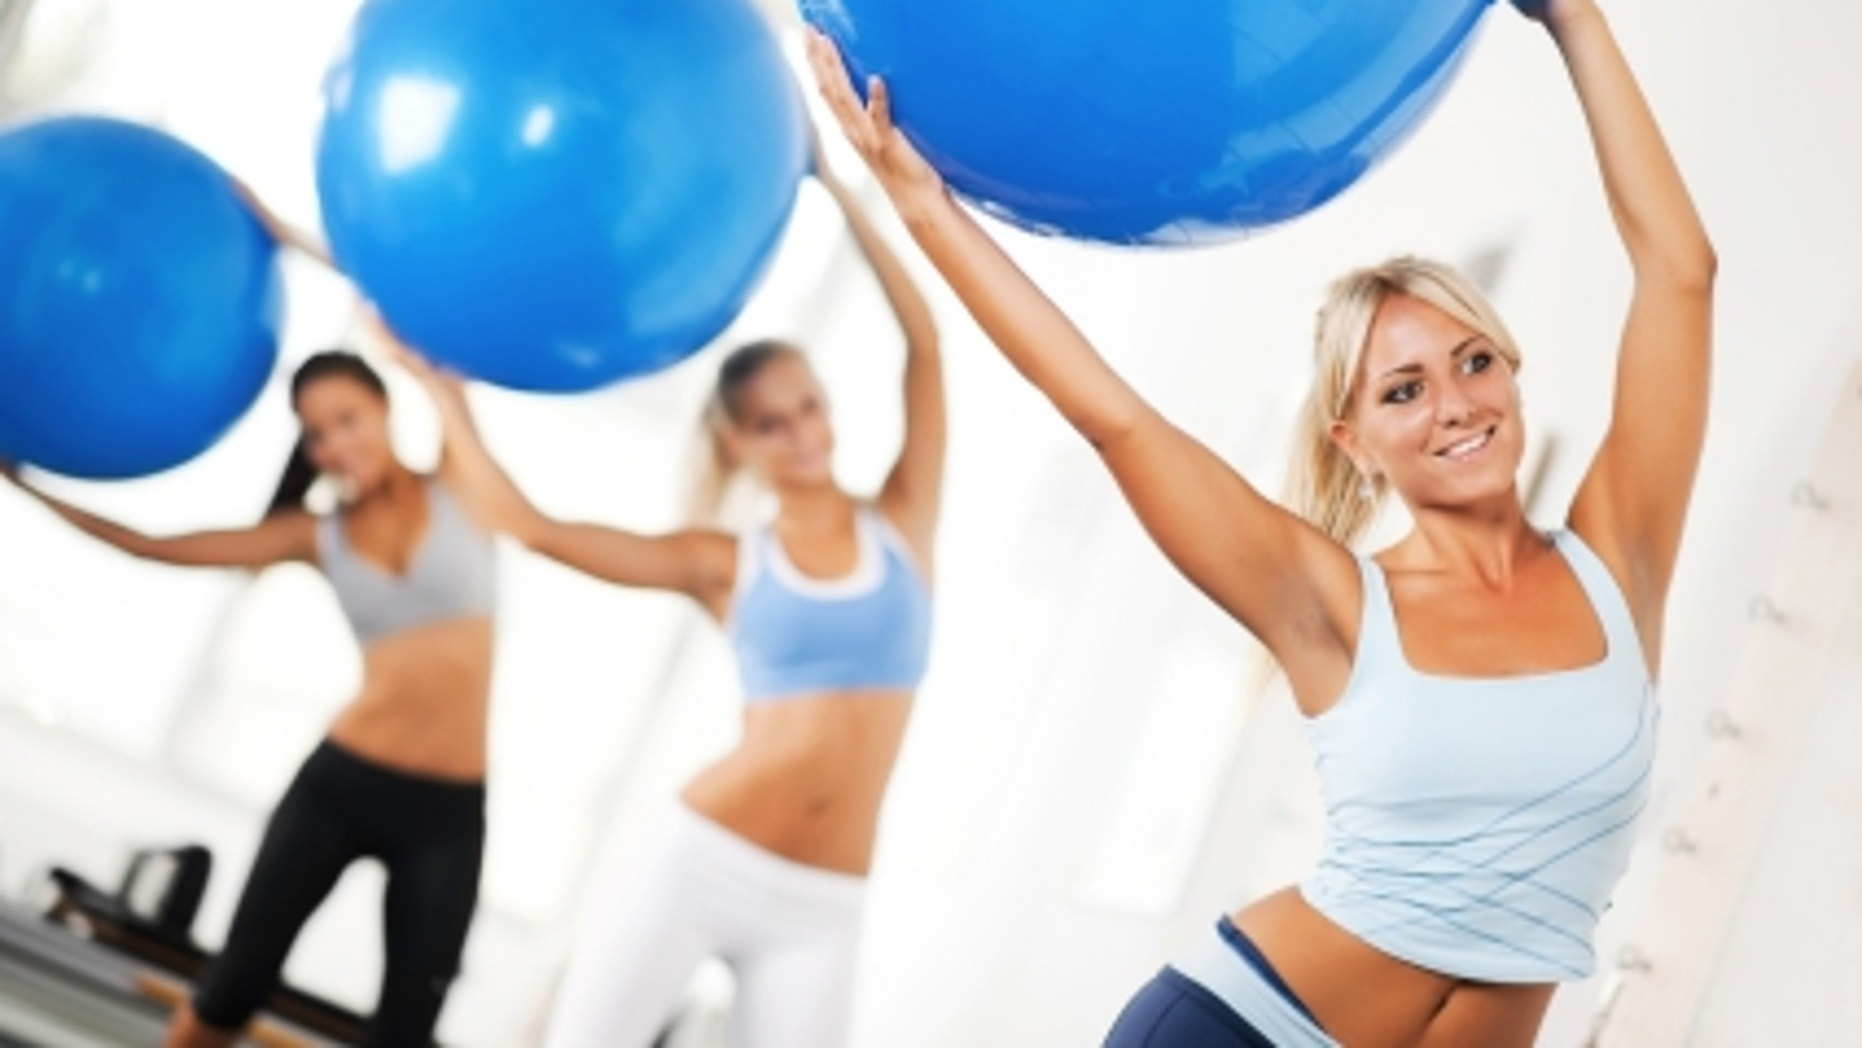 Stability balls are cheap, and you can use them for a variety of exercises that target the arms, stomach and even for yoga.